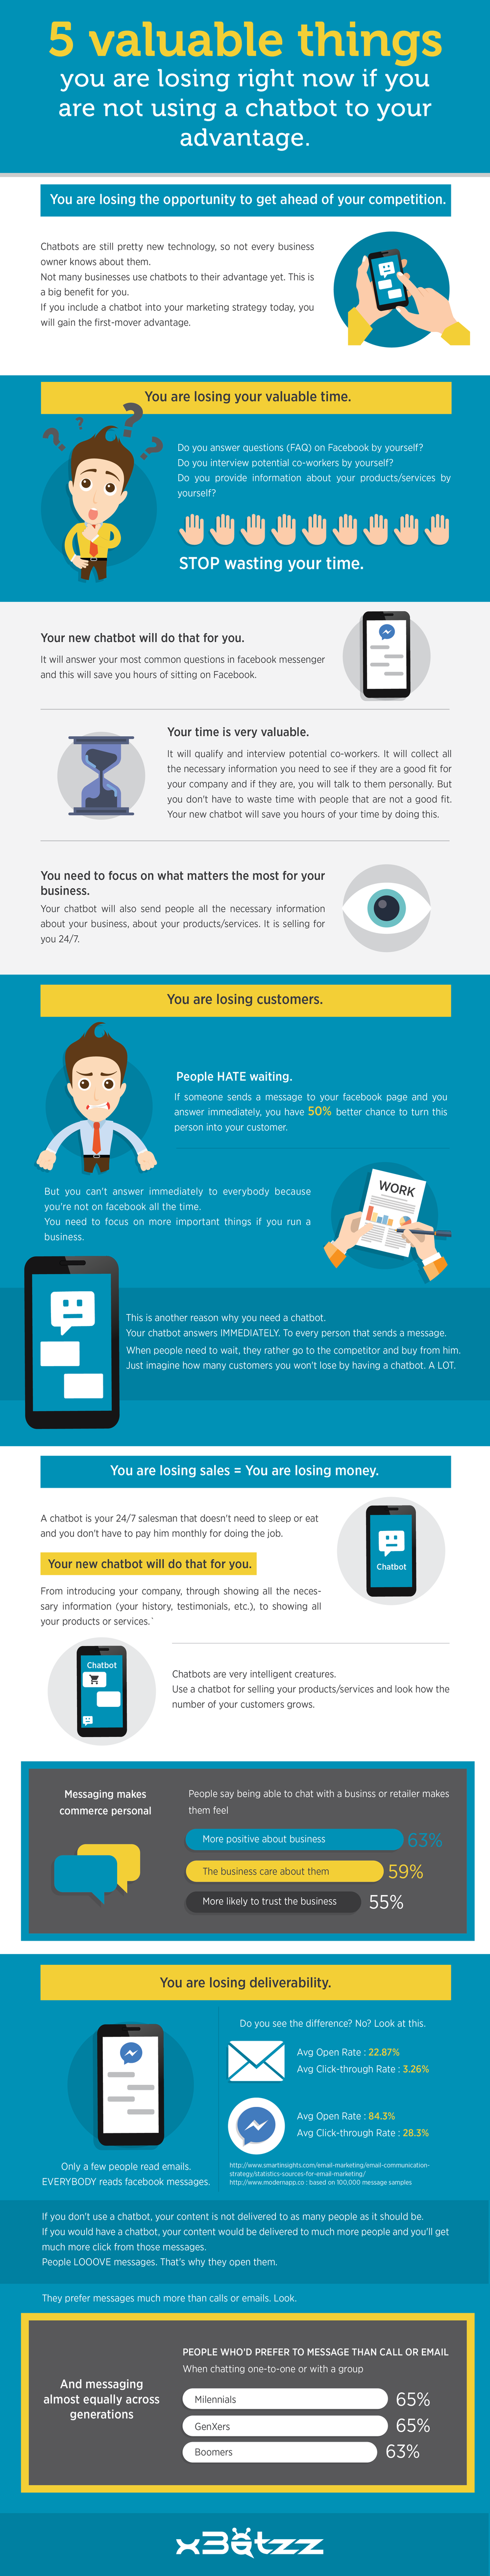 5 things you are losing if you are not using a chatbot.png